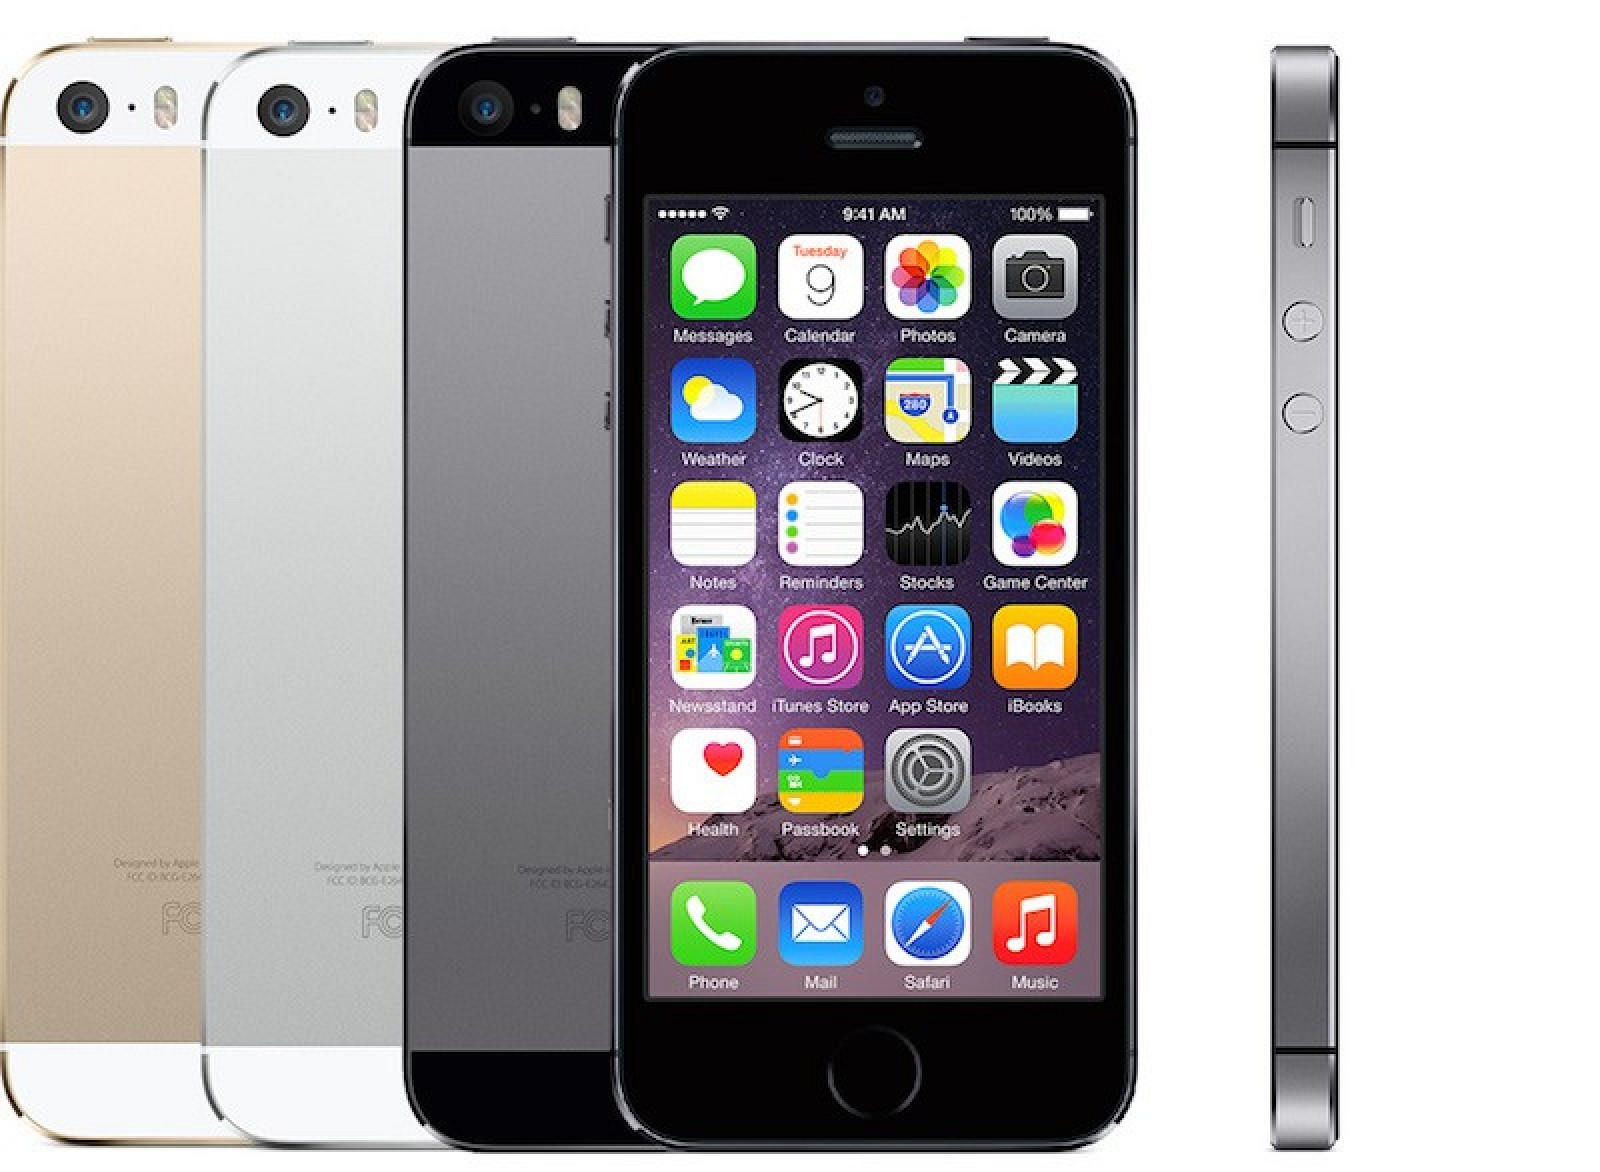 Questionable Rumor Suggests iOS 13 will Drop Compatibility for iPhone 5s Through iPhone 6s